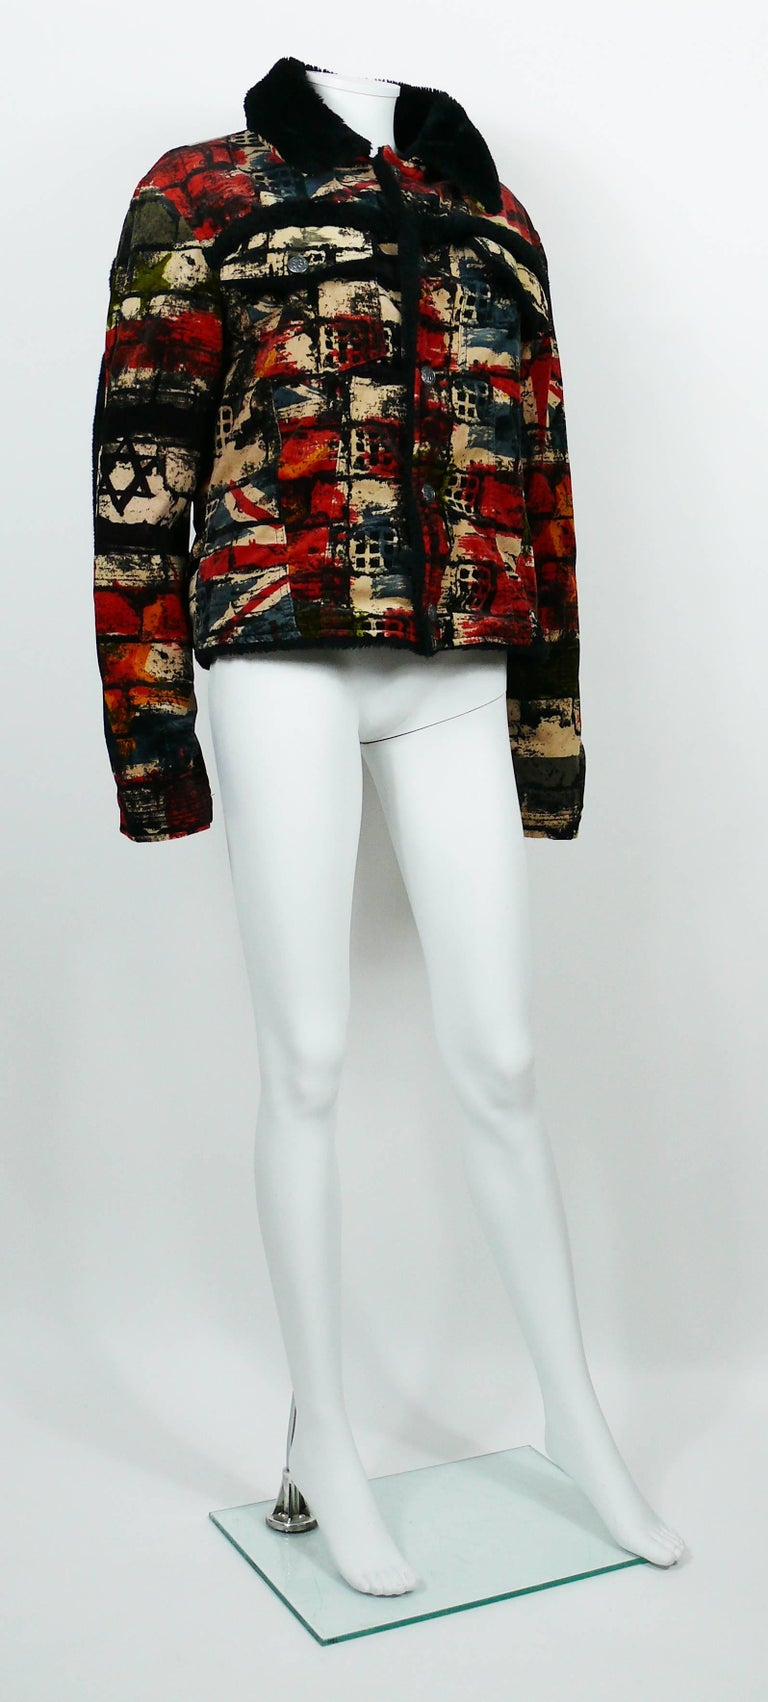 JEAN PAUL GAULTIER vintage jacket featuring a multi colored wall and flags print.  This jacket features : - Velvety touch material. - Faux fur collar. - Faux fur lining and seam details. - Classic collar. - Two chest pockets. - Front snap buttons. -